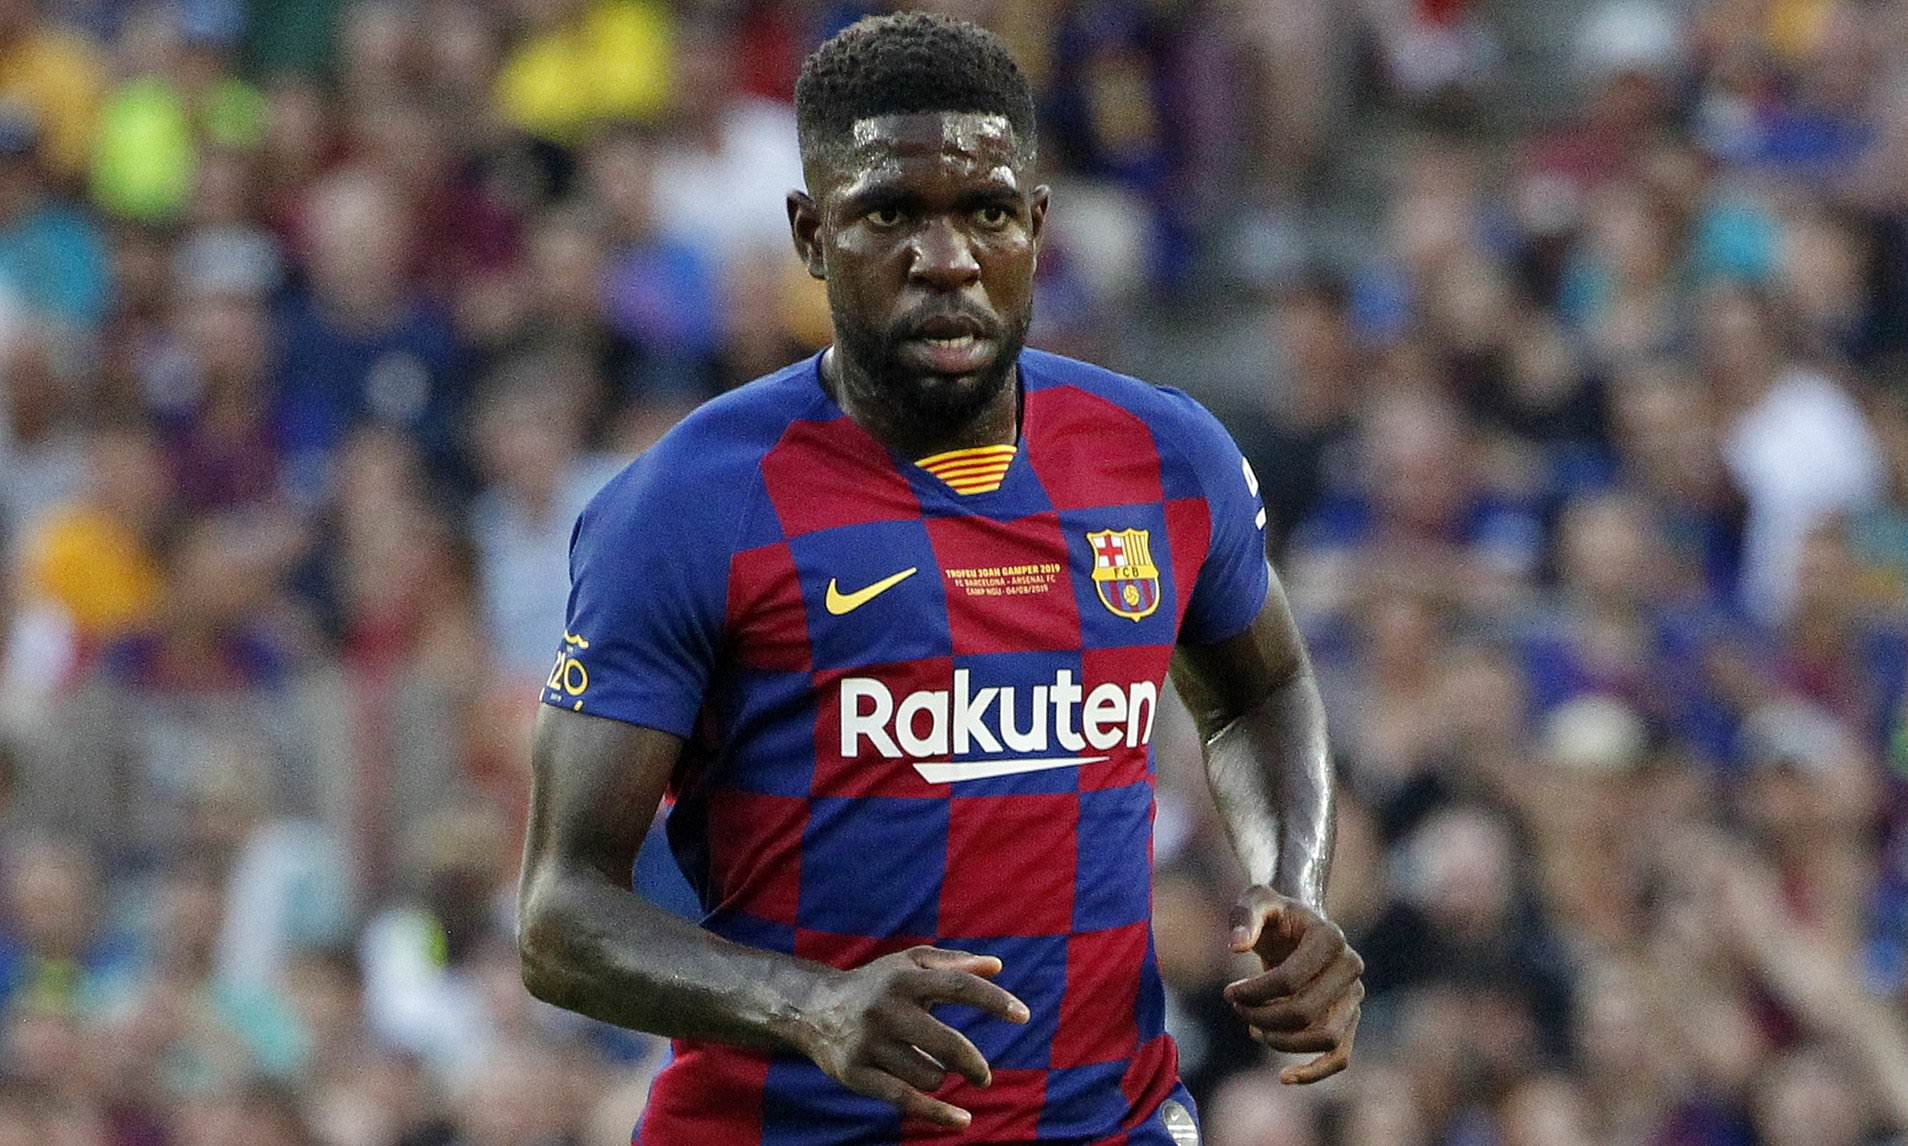 Samuel Umtiti open to staying at Barcelona for life – as long as he gets picked Read more at https://www.fourfourtwo.com/news/samuel-umtiti-barcelona-for-life#R1rq1tPLEZTpAS3S.99 - Bóng Đá